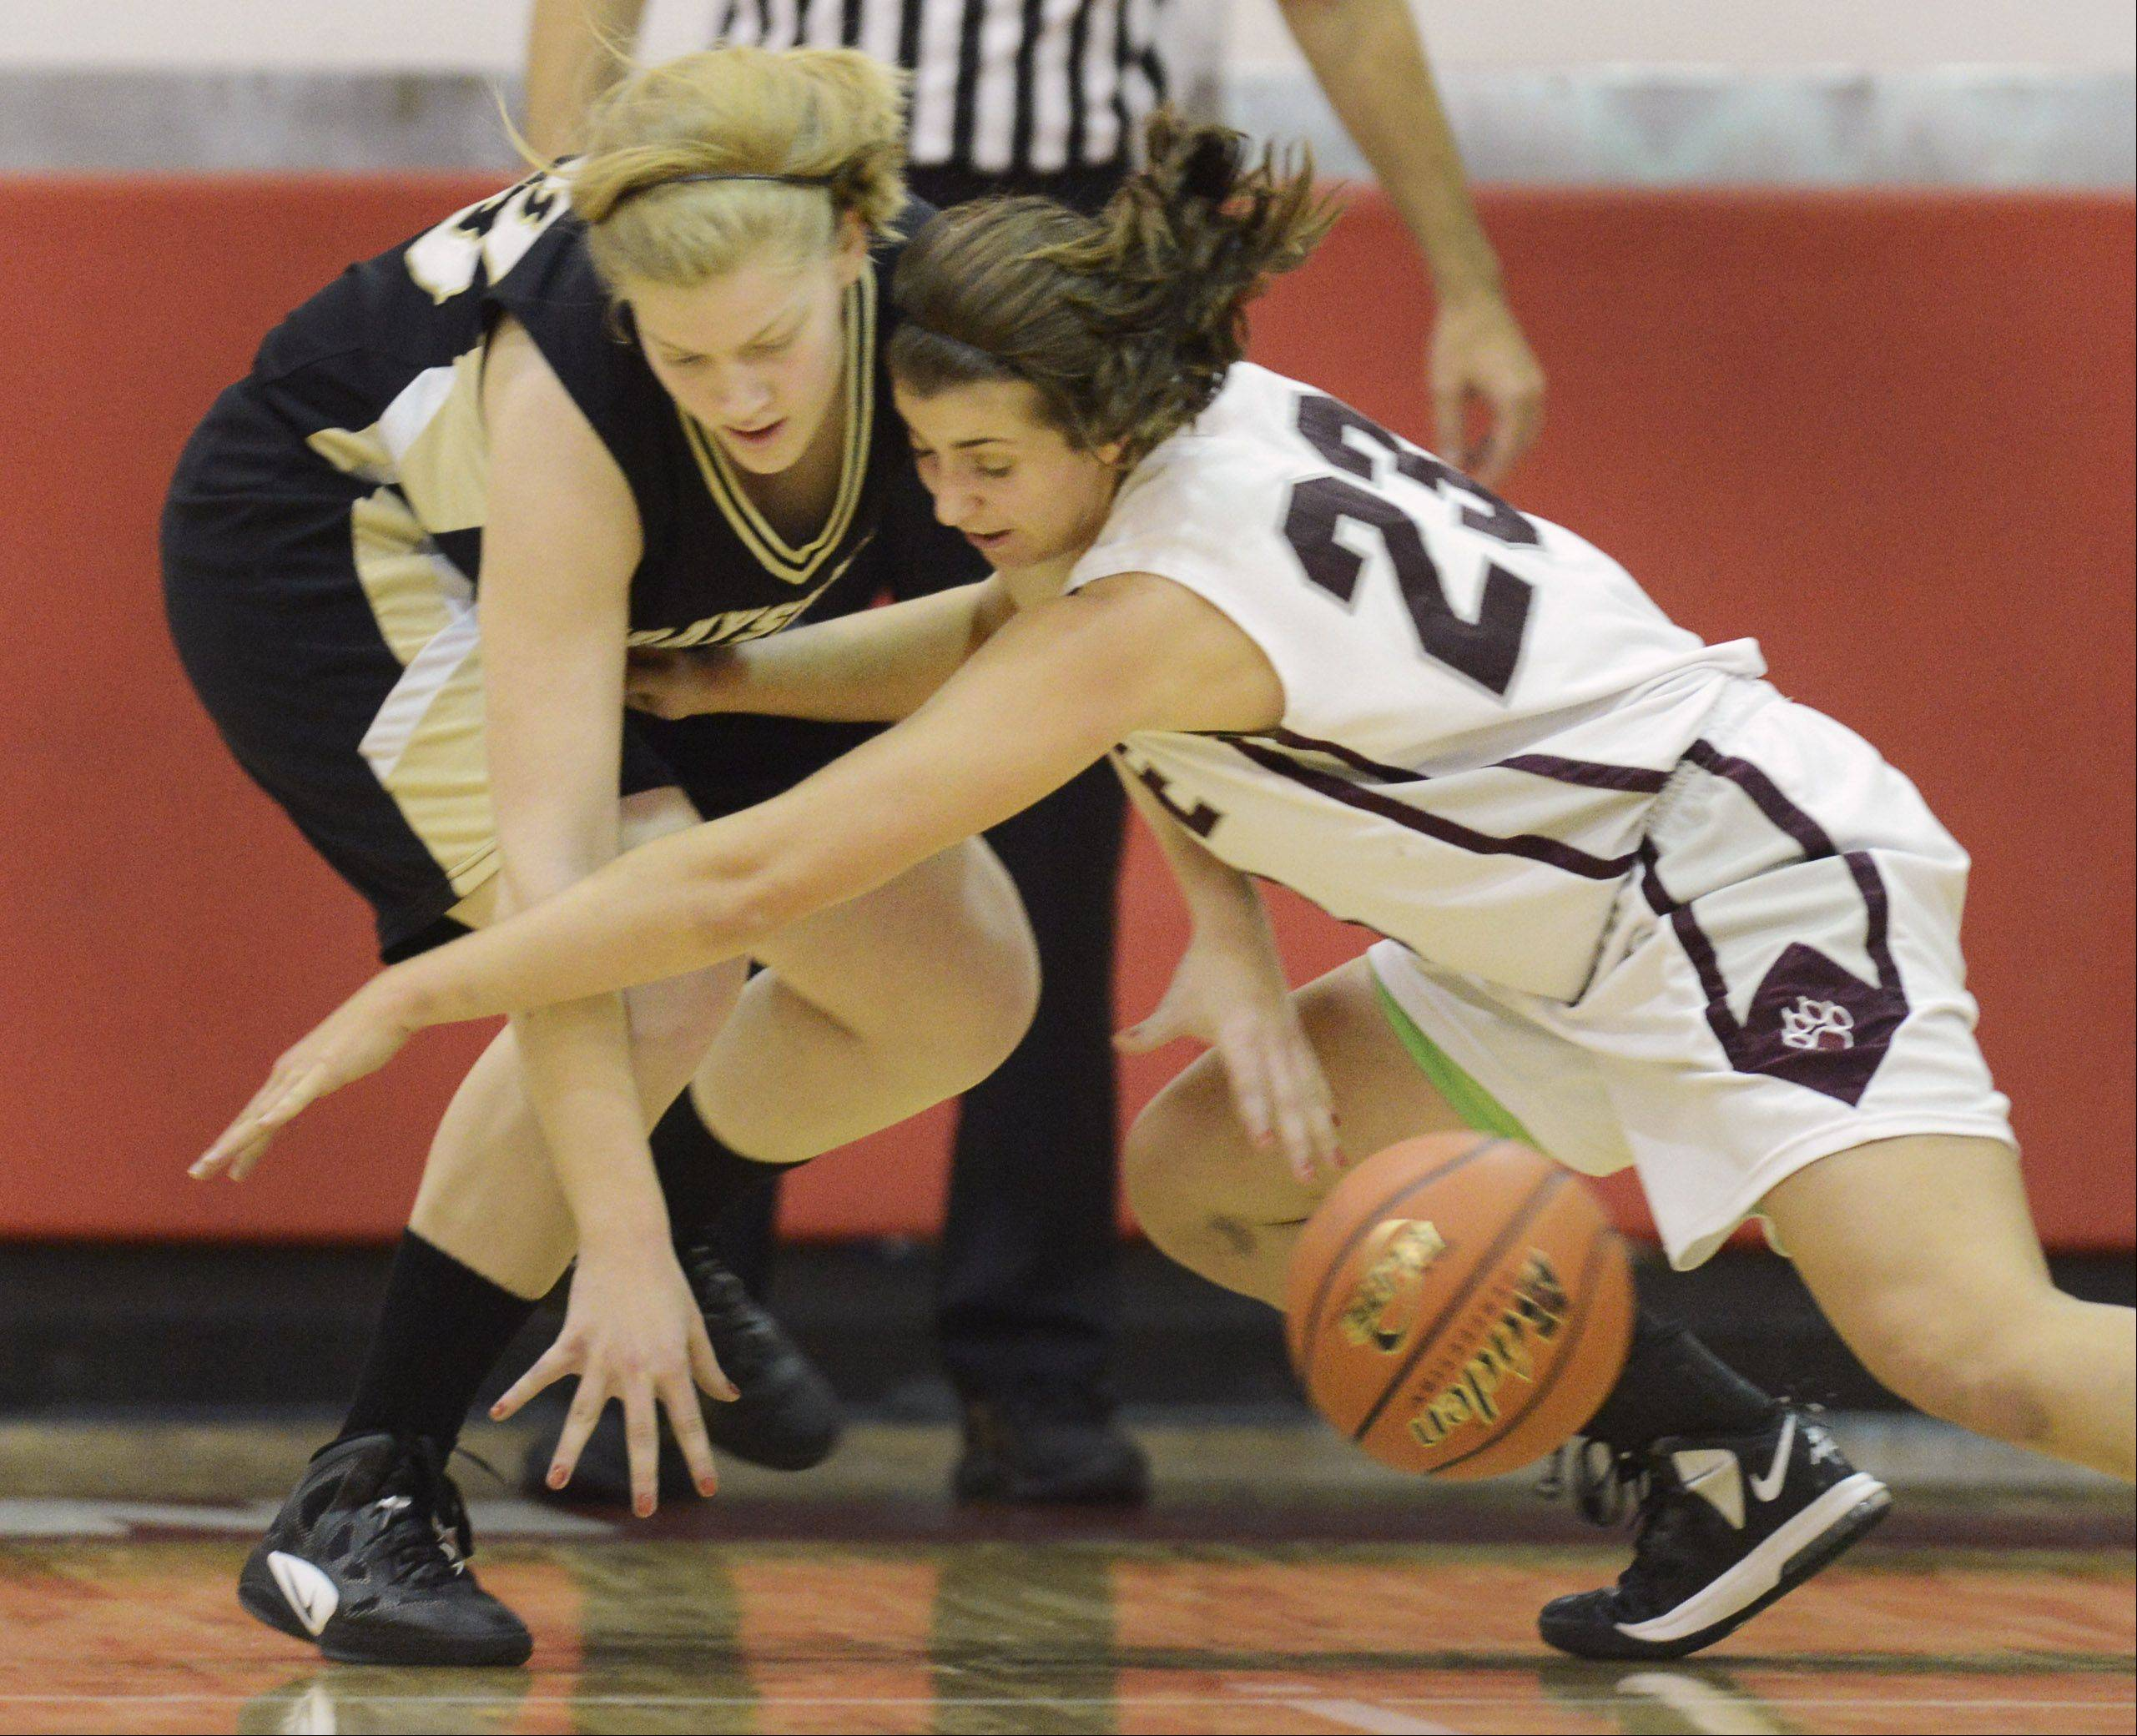 Joanna Guhl, left, of Grayslake North and Alex Neckopolous of Prairie Ridge try to control a loose ball during Friday's game at Mundelein.